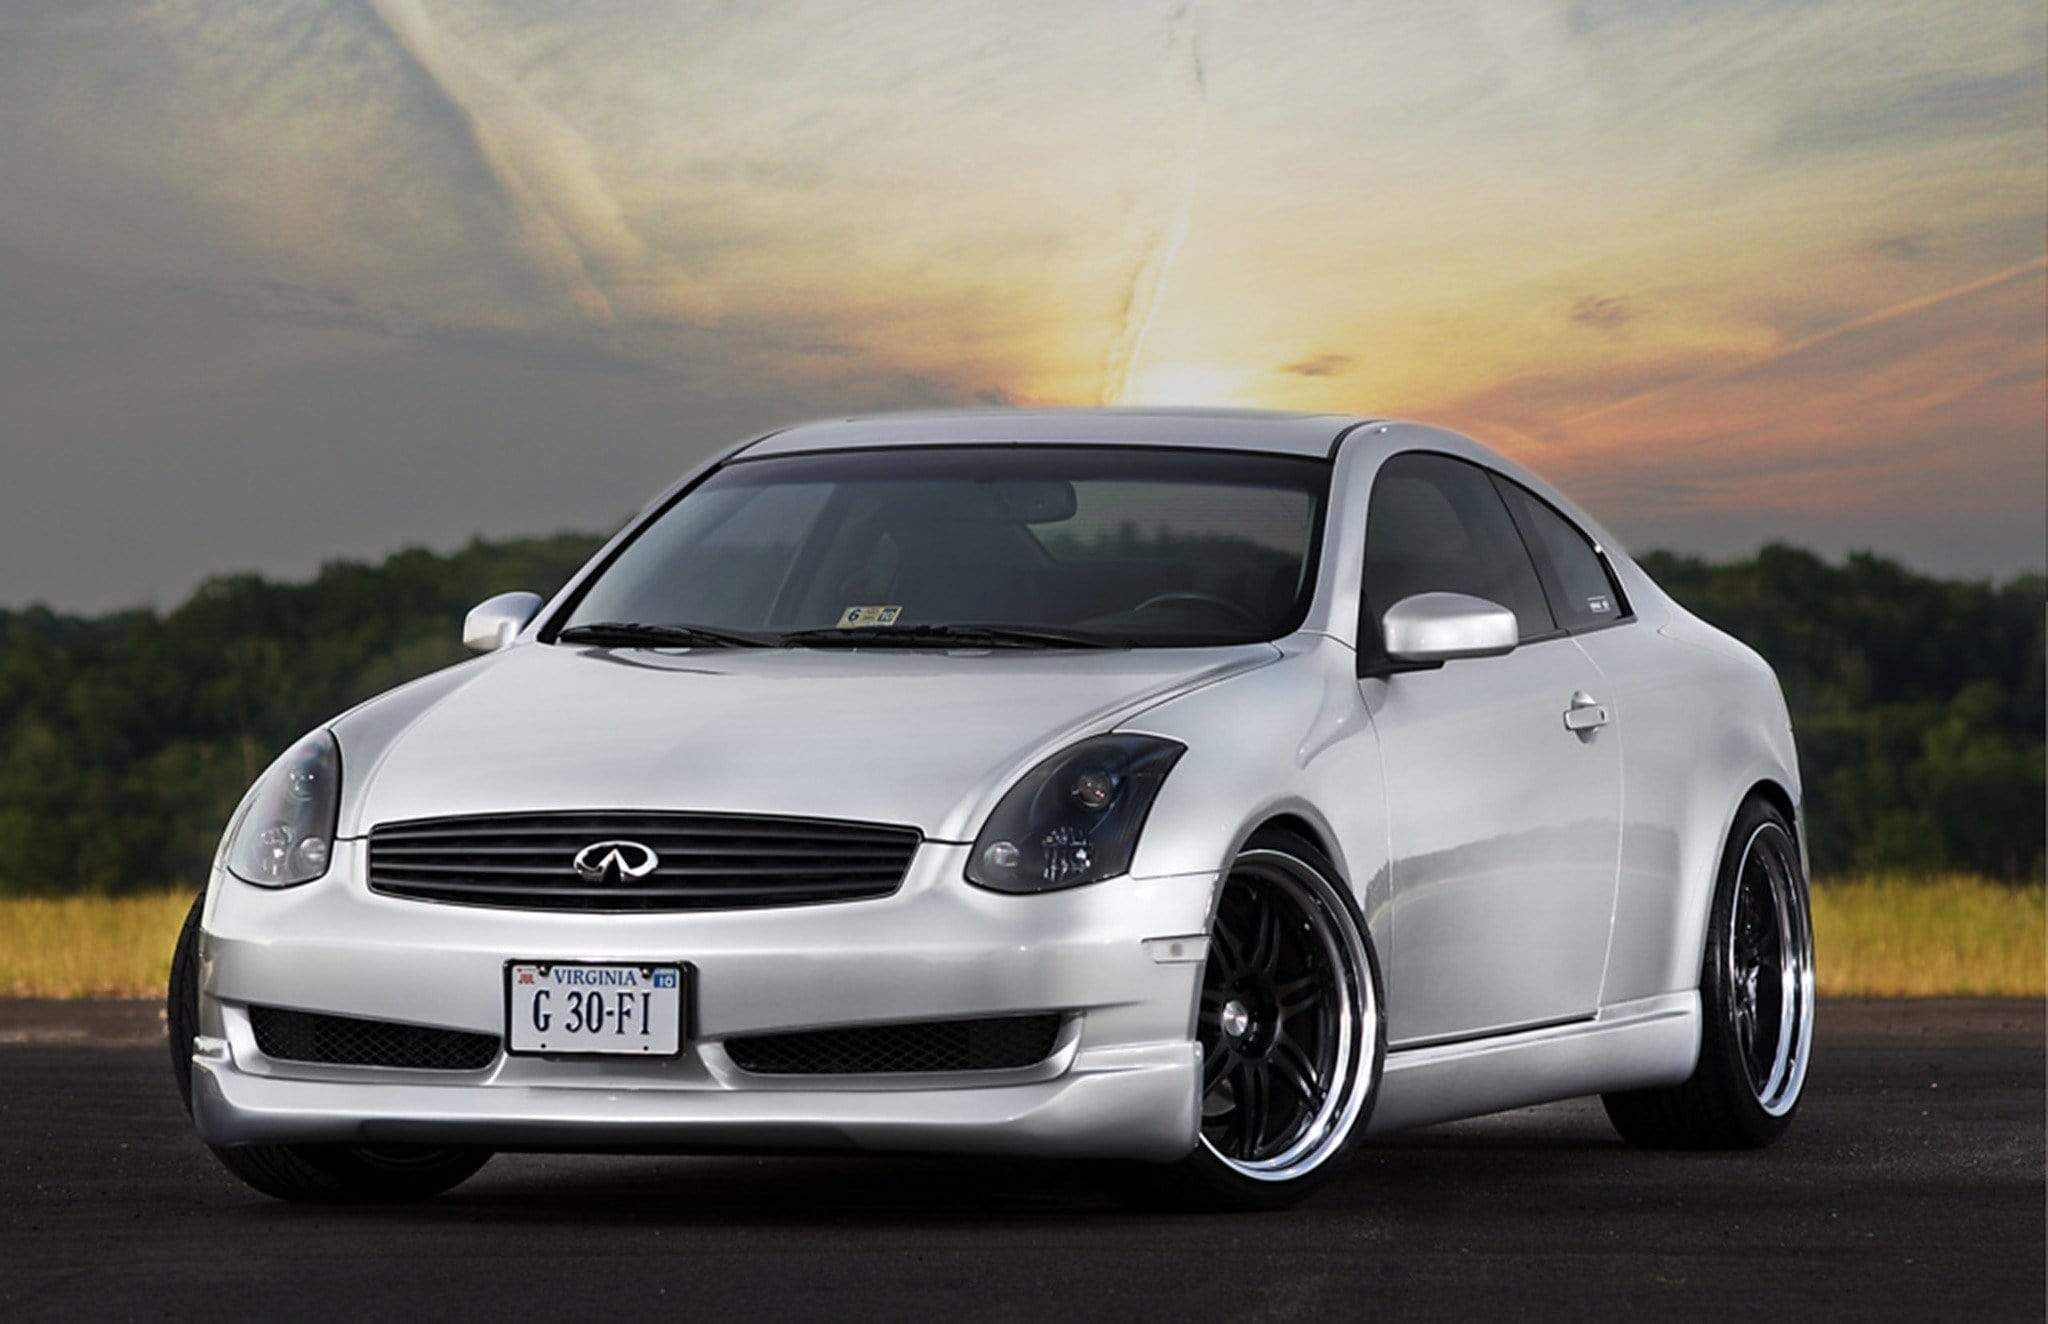 Infiniti G35 Coupe and Sedan (2003-2007) V35 Titanium Dress Up Bolts Engine Bay Kit - DressUpBolts.com